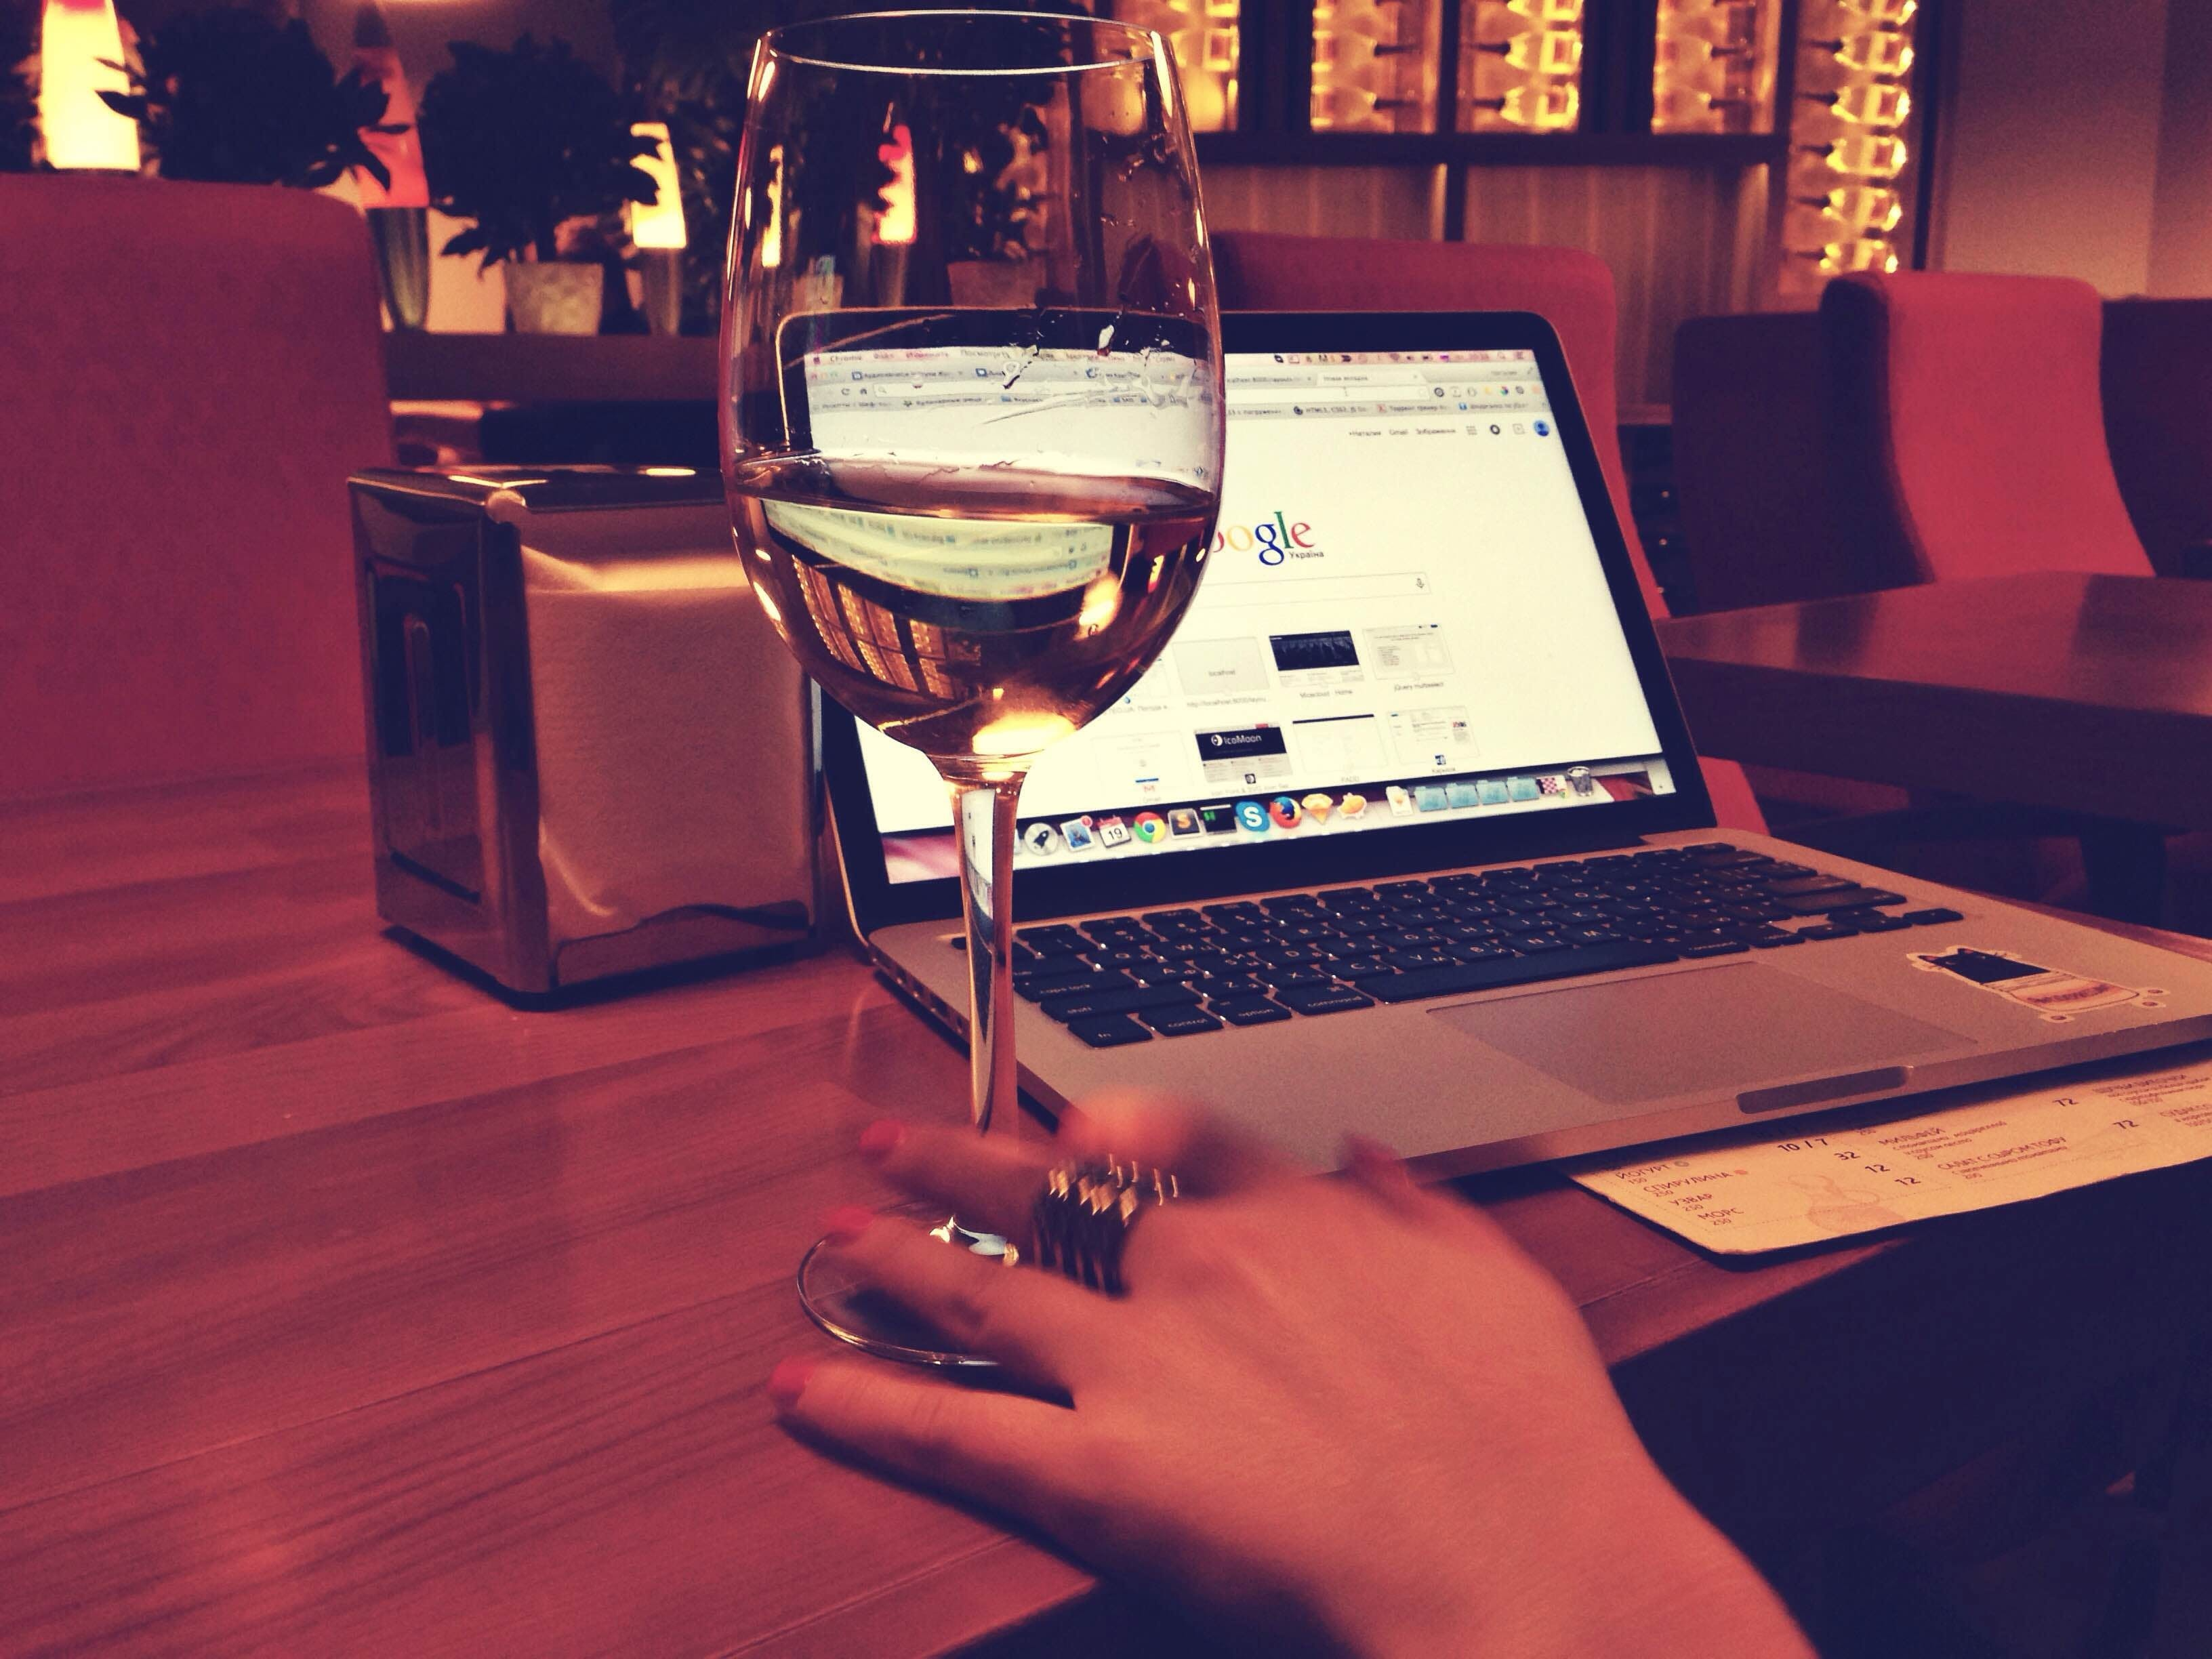 Person Using Macbook Pro Near Wine Glass on Table